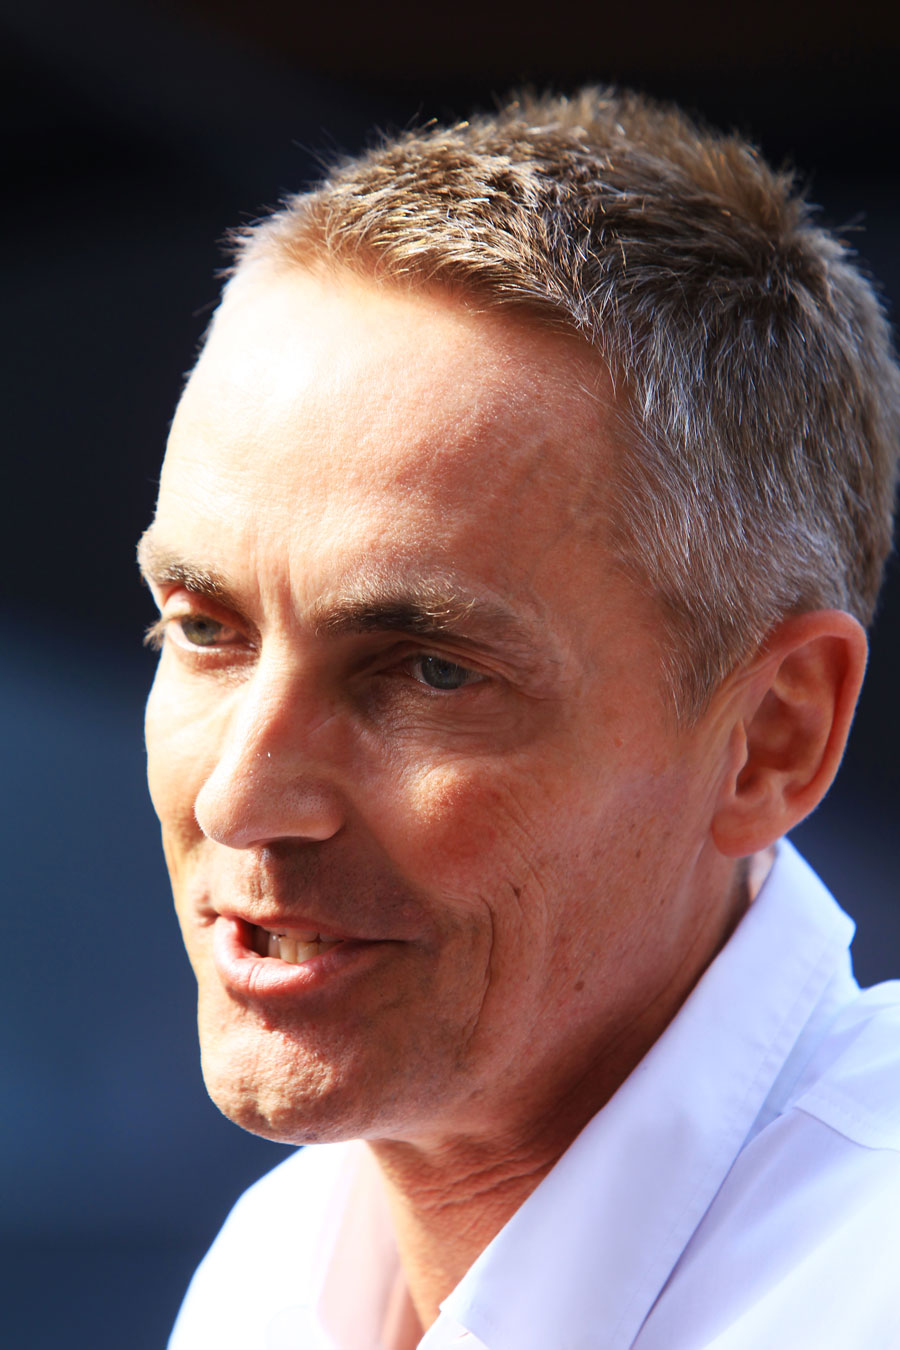 Martin Whitmarsh answers questions from the press